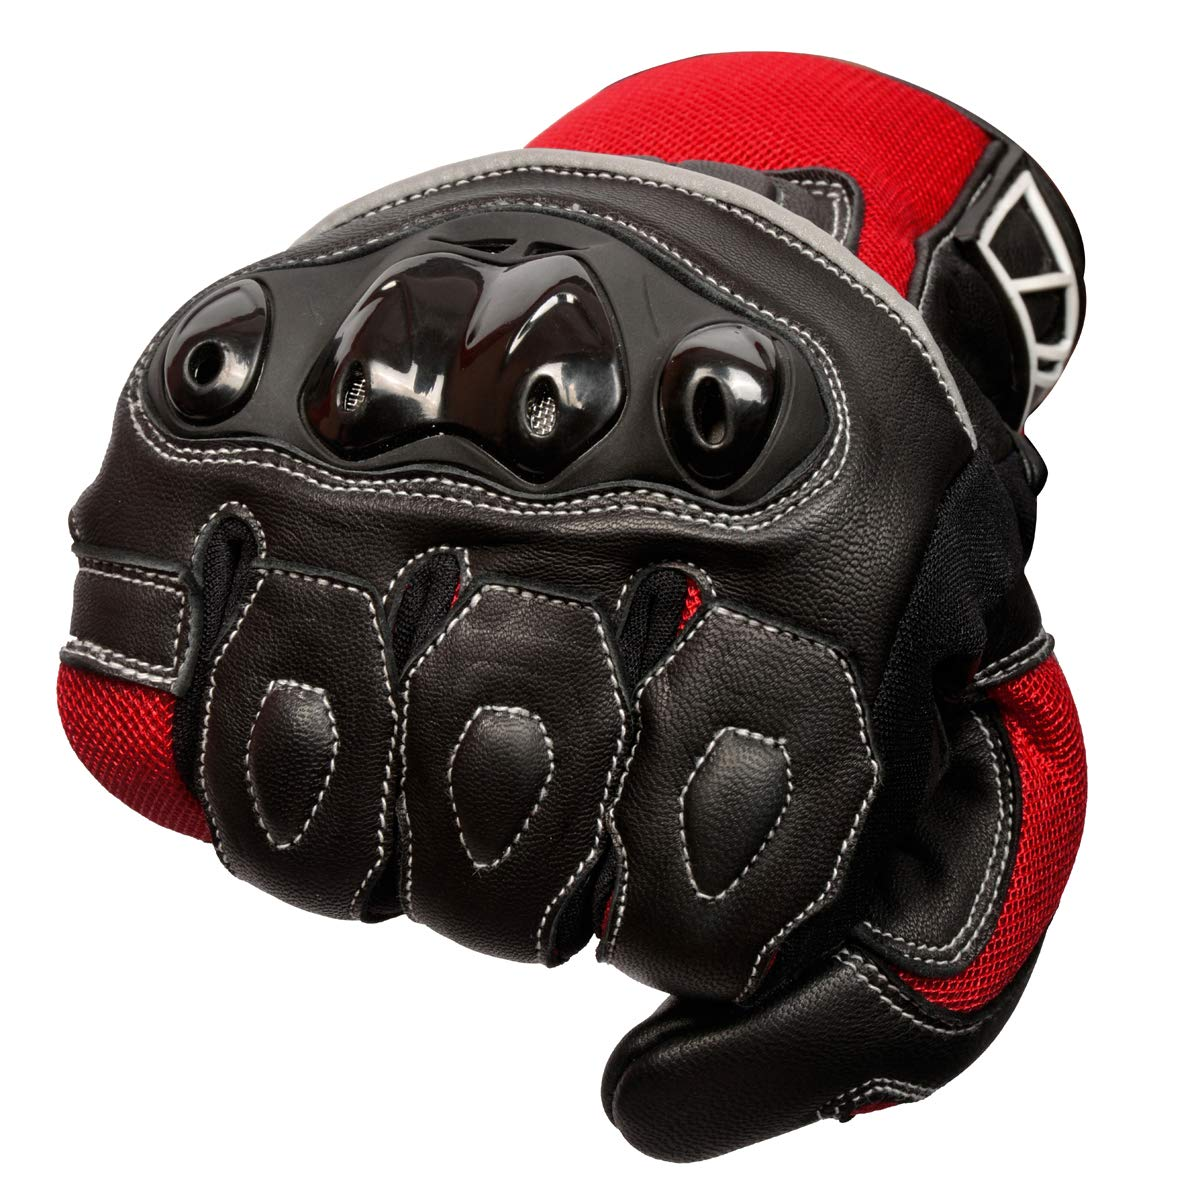 Oro Biker Motorbike Motorcycle Gloves Premium Leather and Summer Mesh Hard Knuckle Touch Screen Motorbike Gloves Racing ATV Riding Gloves for Men Large, Full Black